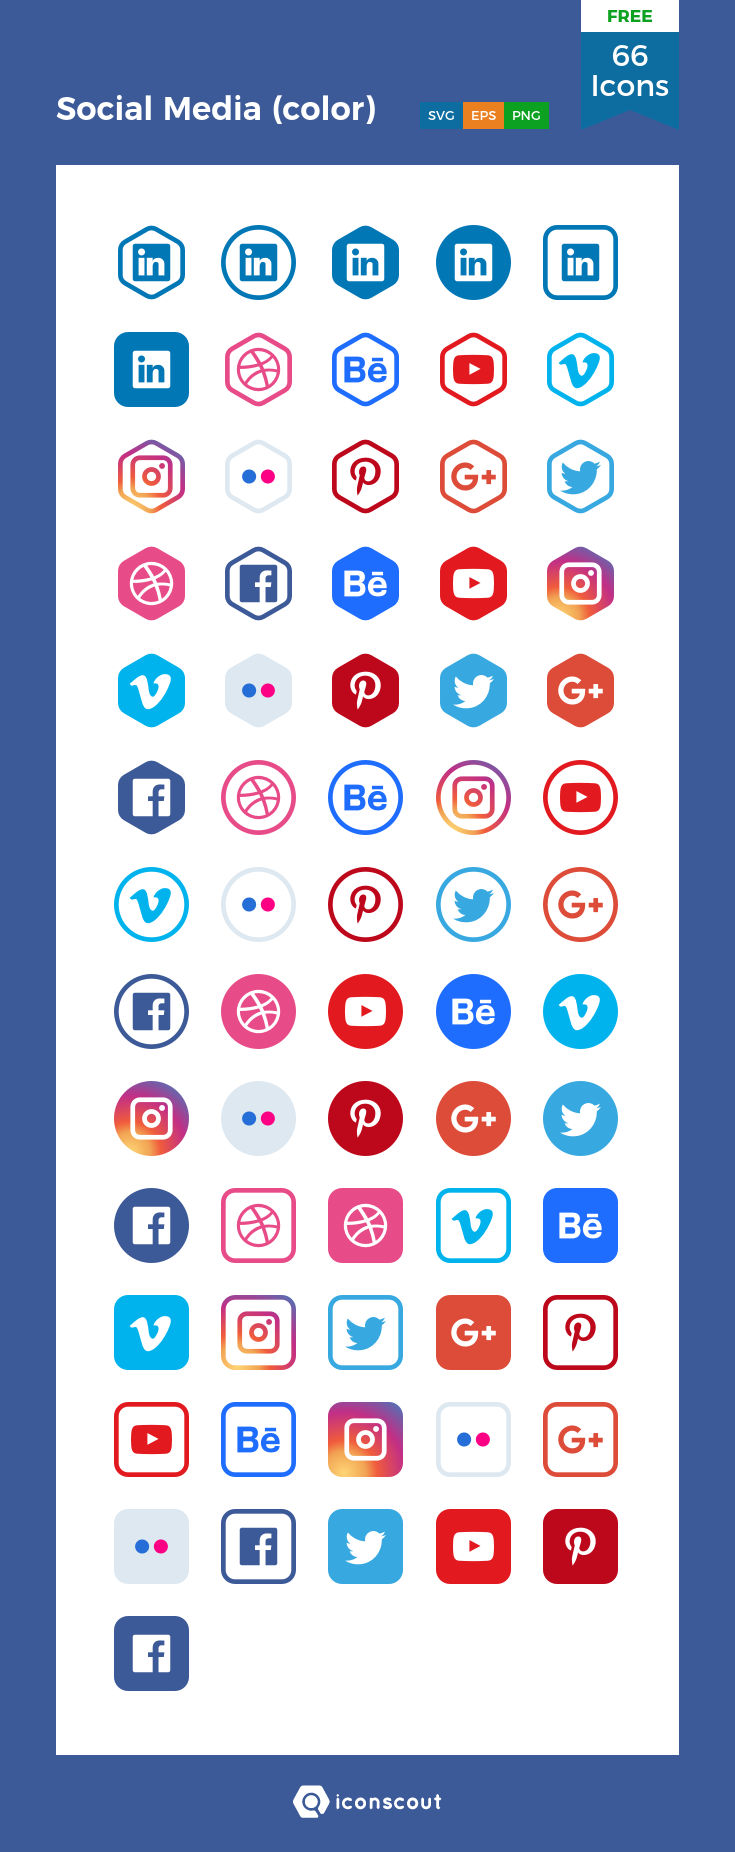 Download Social Media (color) Icon pack Available in SVG